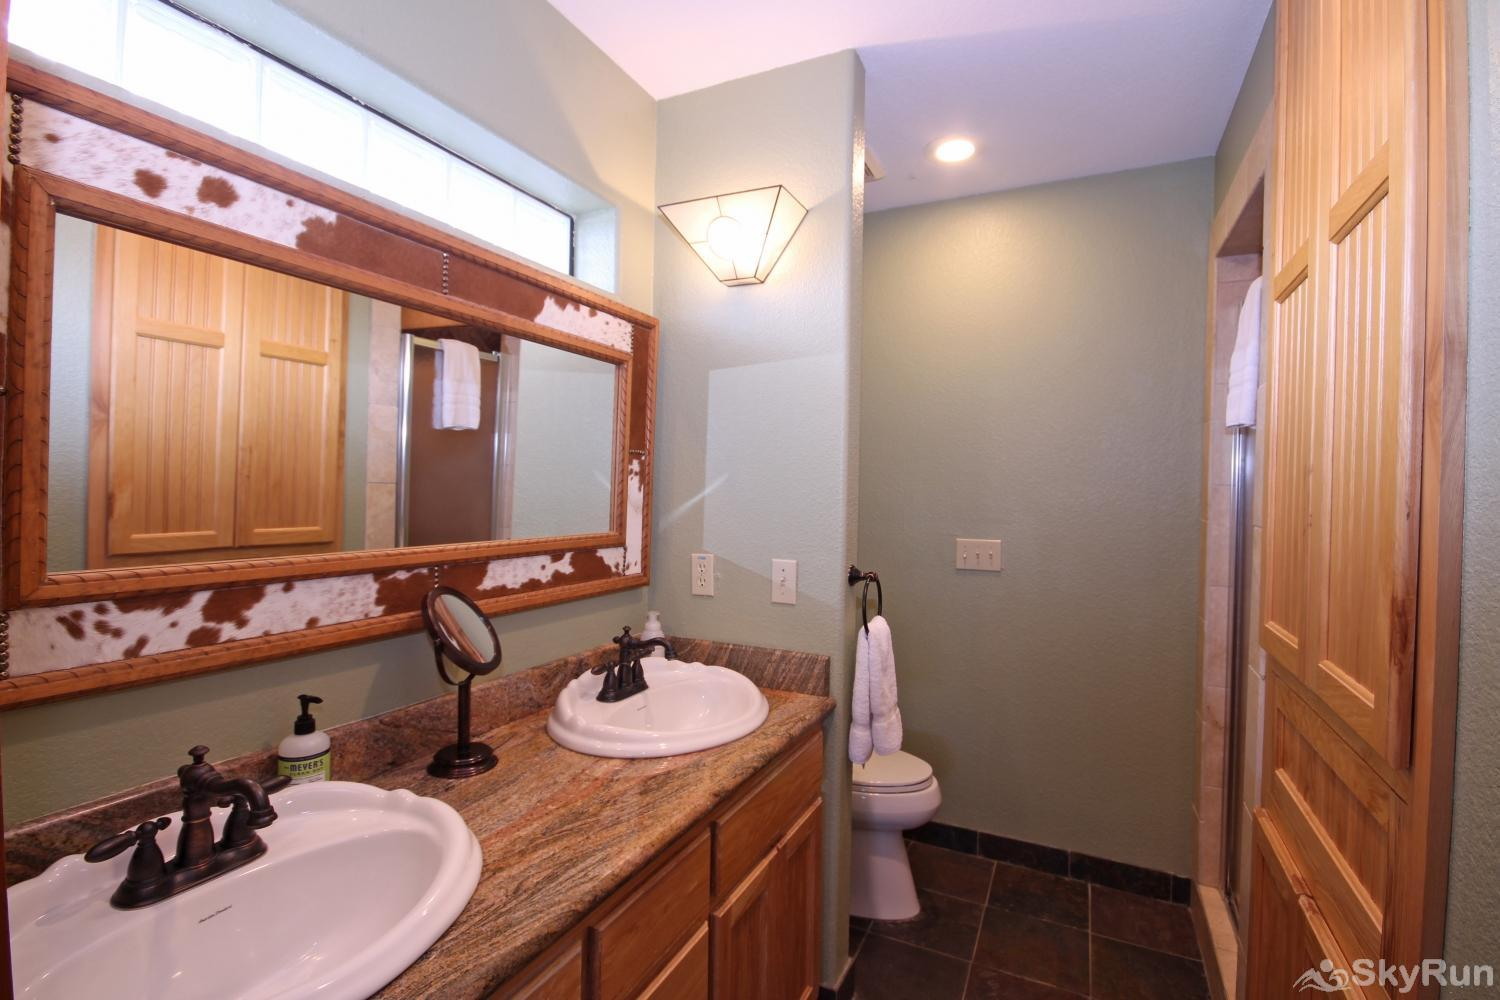 STAR HOUSE First bathroom with dual sinks and walk- in shower